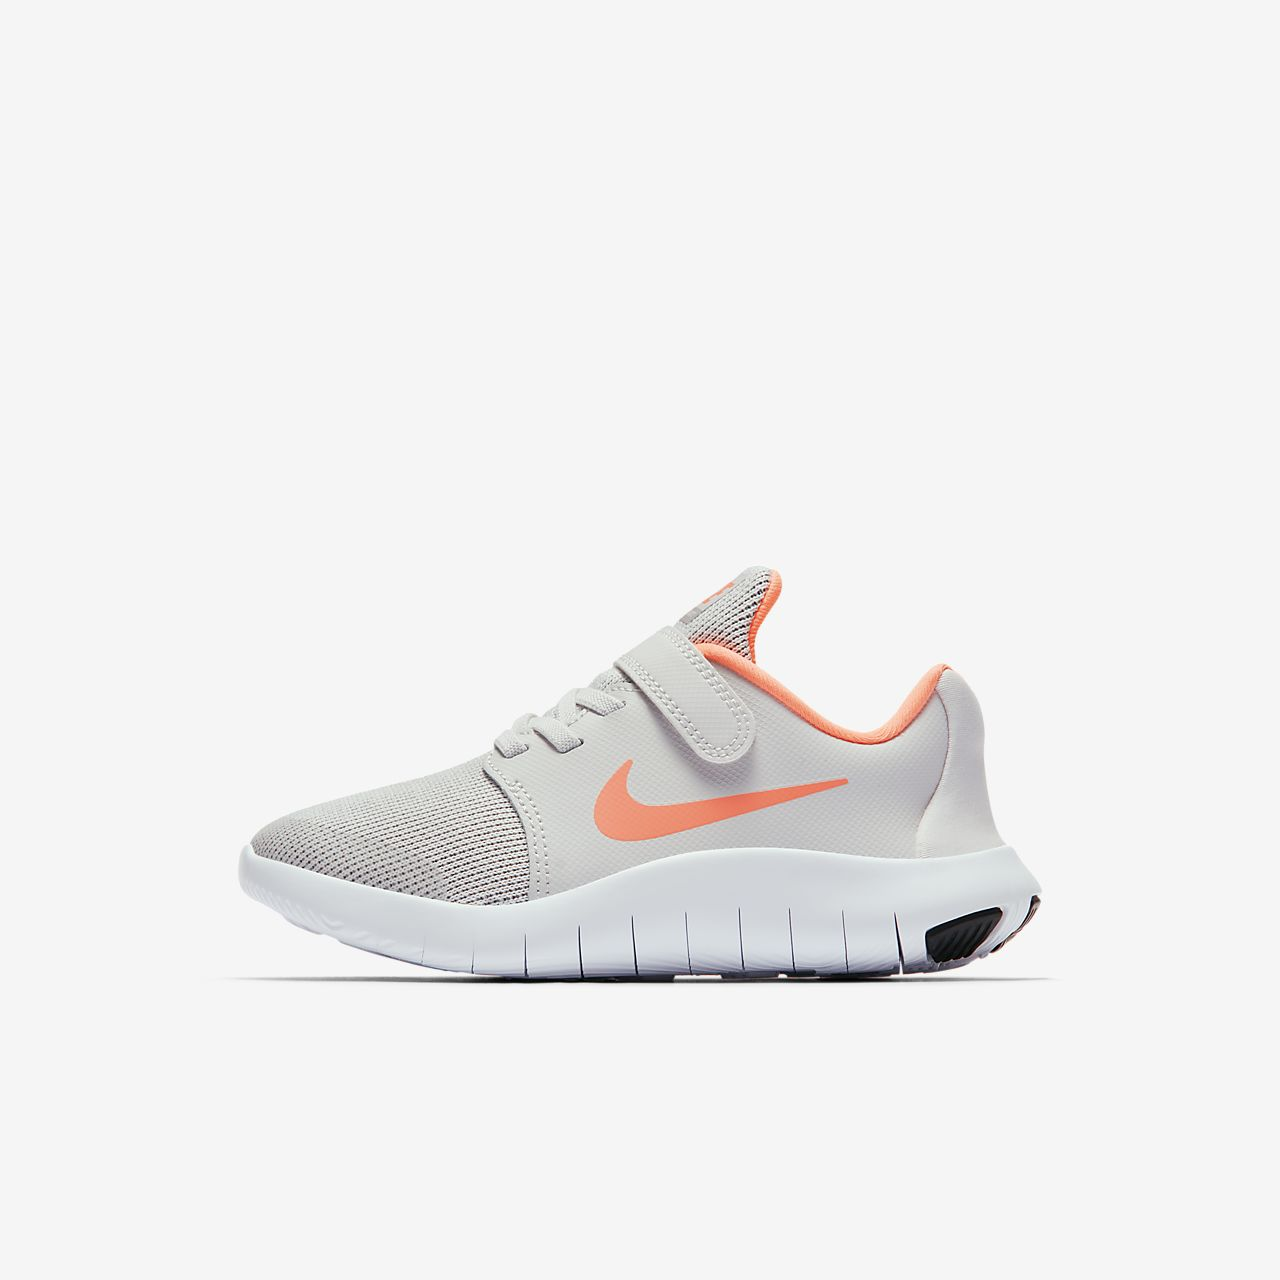 the best attitude 6e678 60da9 Sko Barn   Authentic NIKE cross training sneakers low Flex Experience Paris  - Trainers Cross-